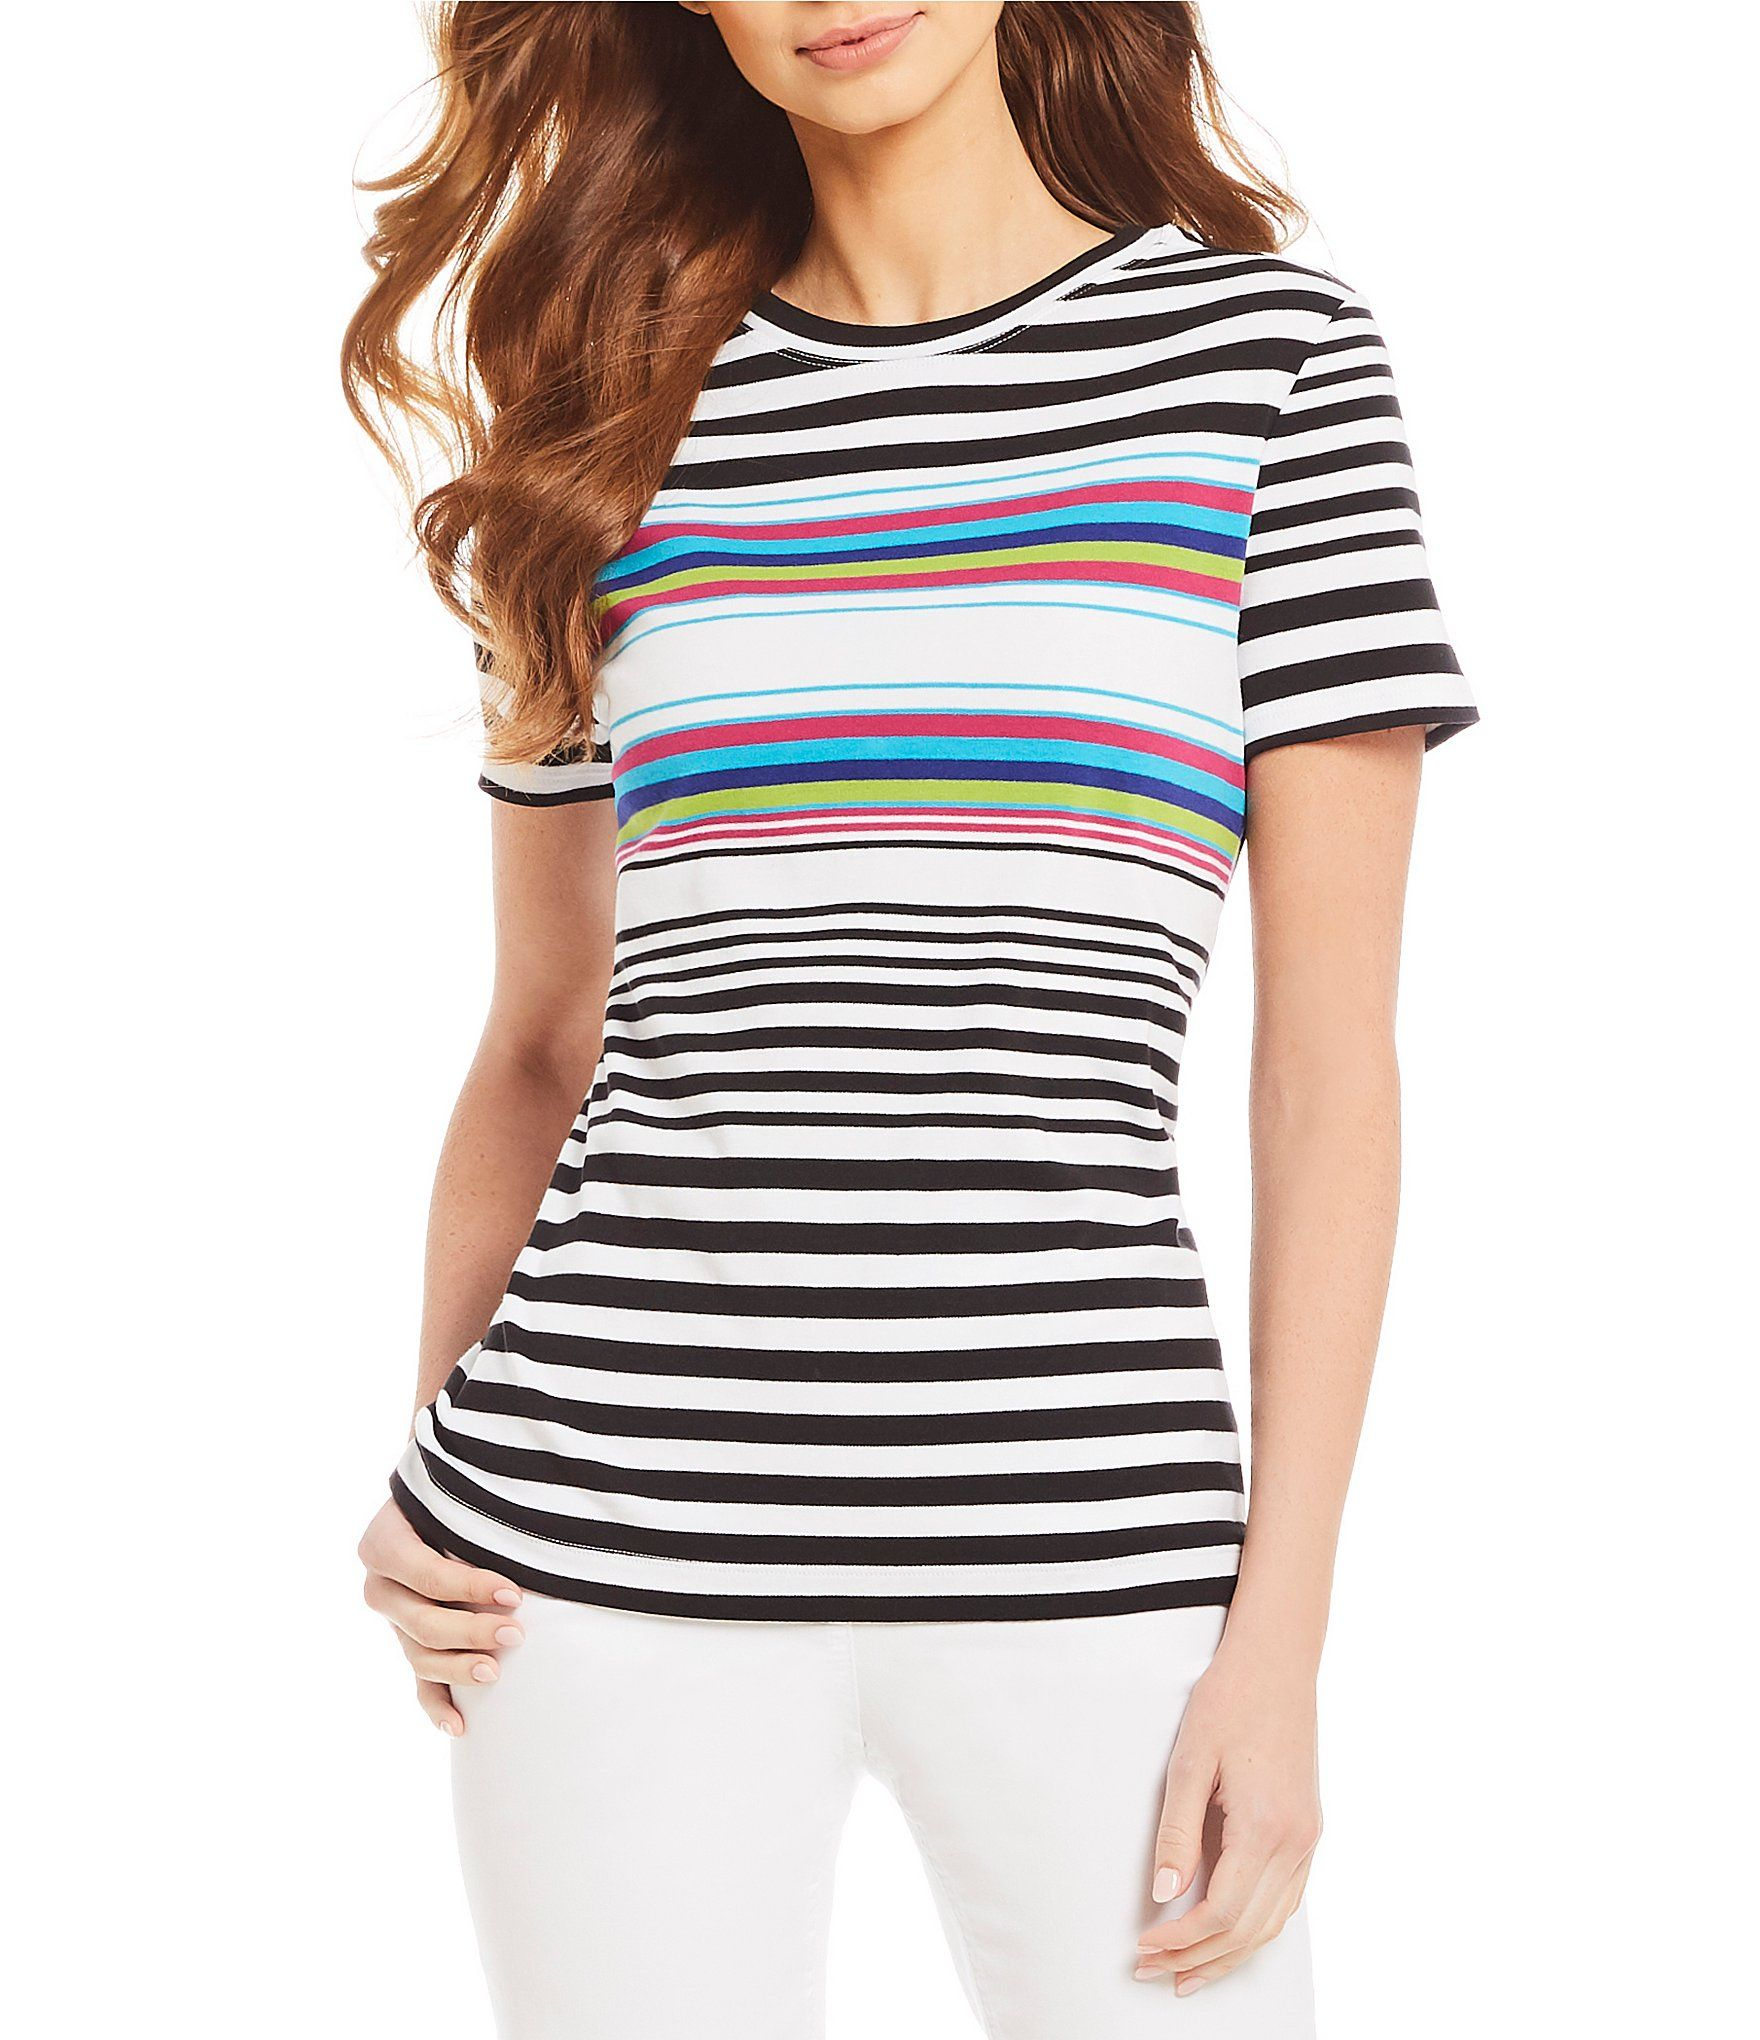 870f1975b5be8 Shop for Westbound Short Sleeve Stripe Crew Neck Tee at Dillards.com. Visit  Dillards.com to find clothing